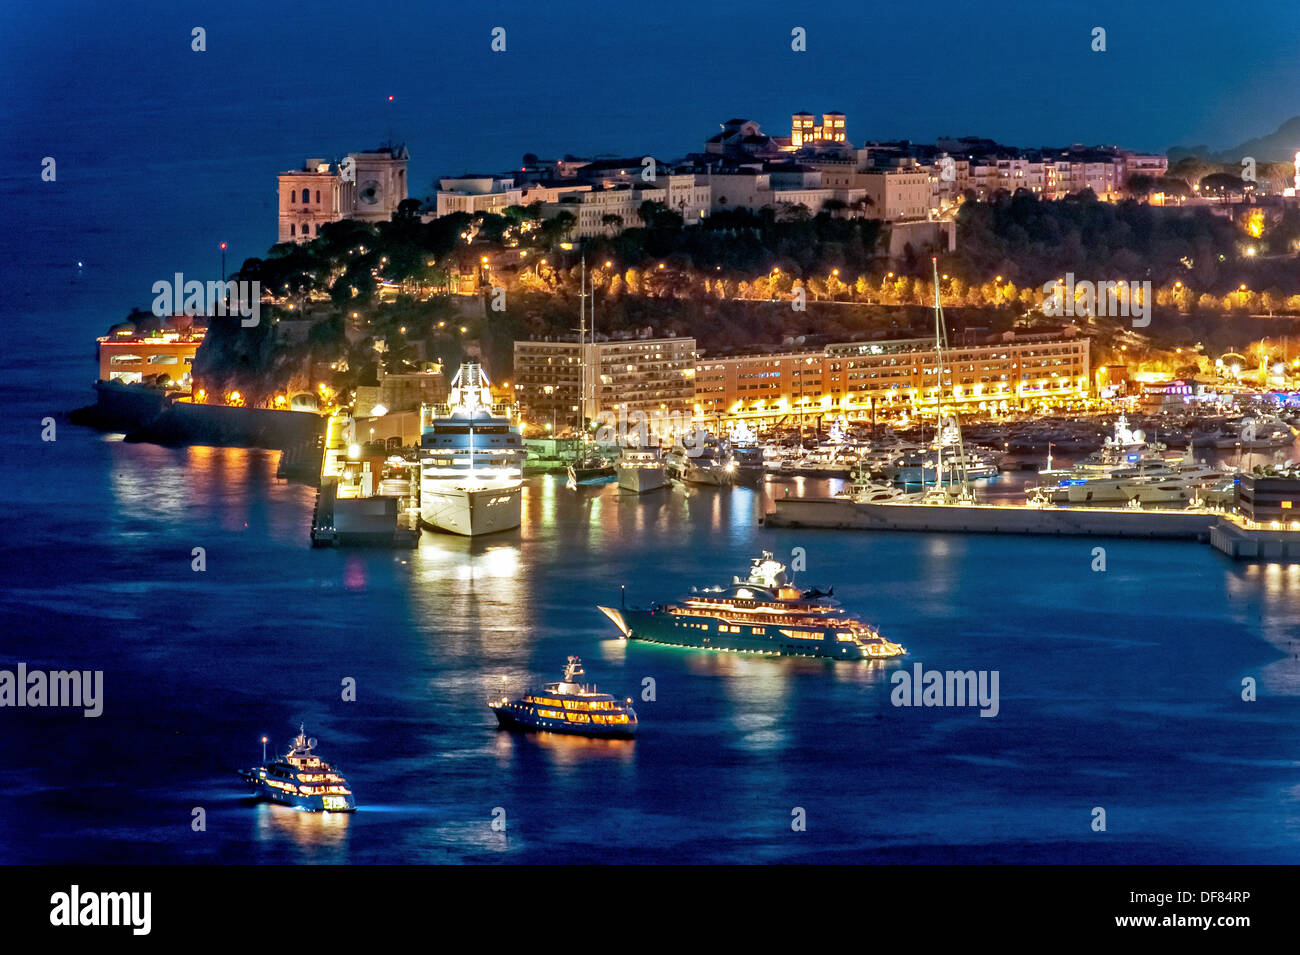 Europe, France, Principality of Monaco, Monte Carlo. The Rock of Monaco at night. - Stock Image